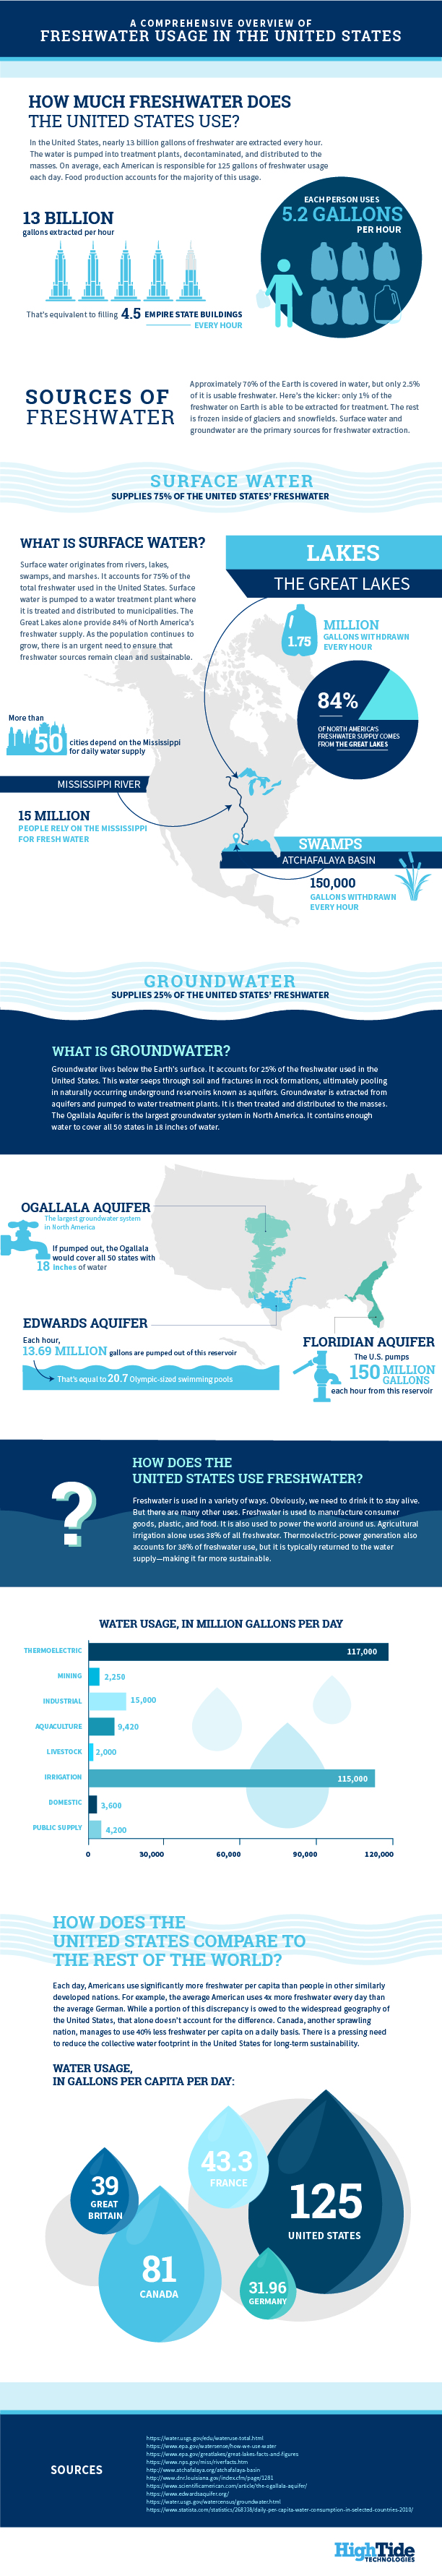 A Comprehensive Overview of Freshwater Usage in the United States